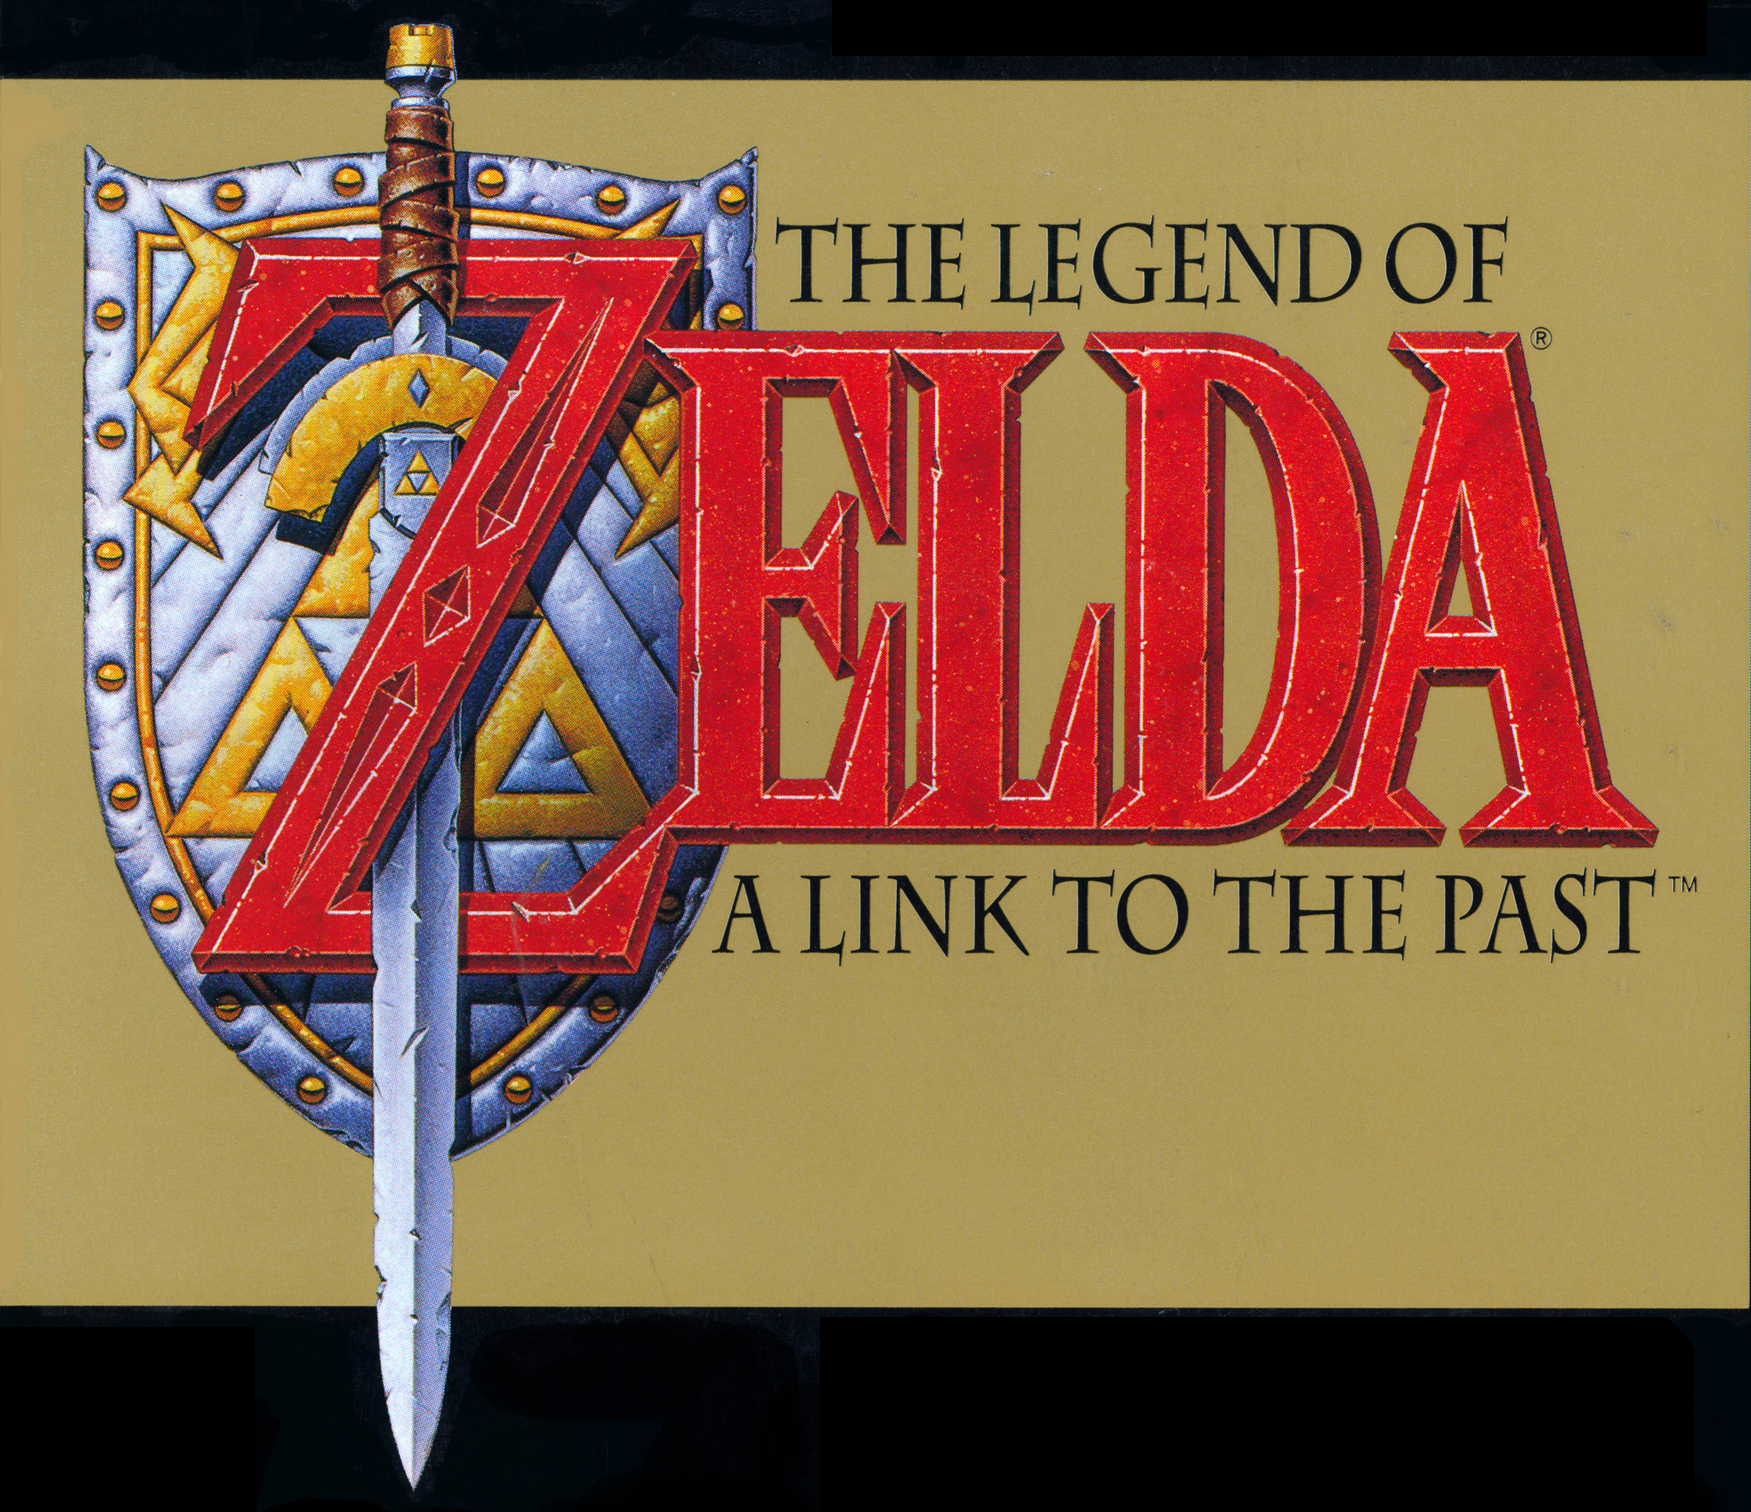 Game cover for The Legend of Zelda: A Link to the Past